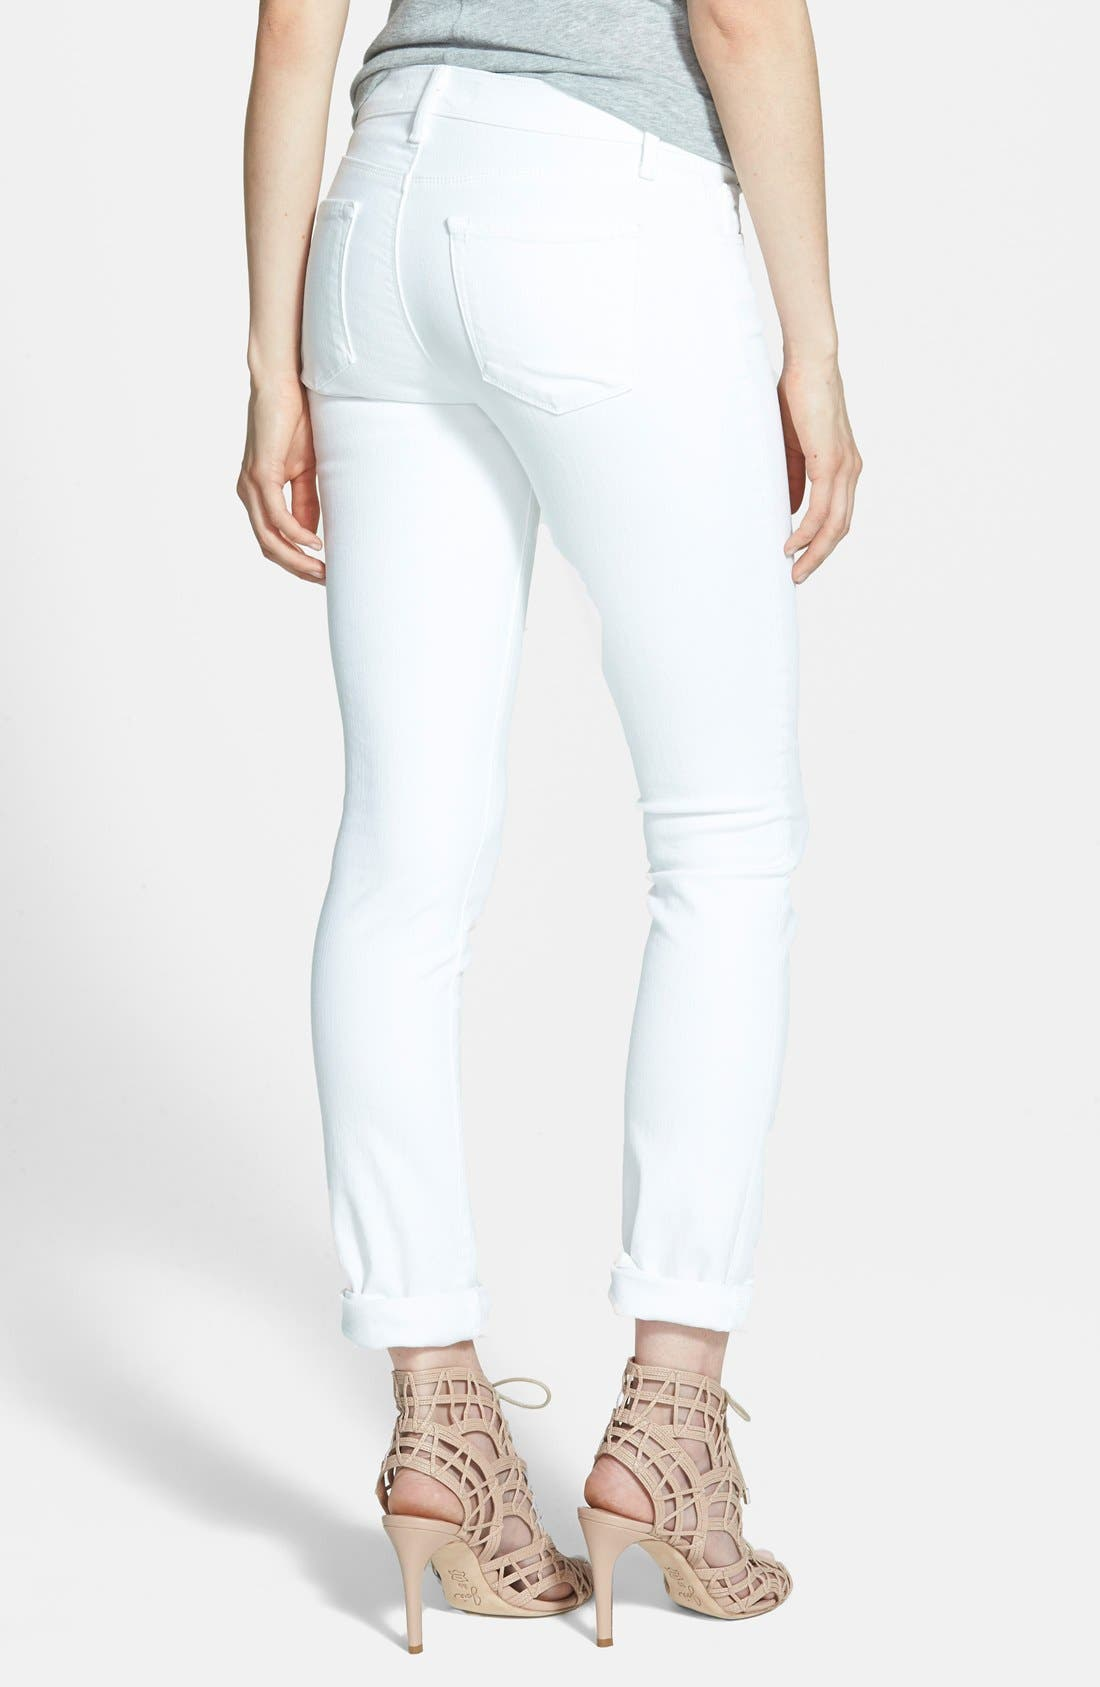 '811' Mid-Rise Stovepipe Jeans,                             Alternate thumbnail 4, color,                             100